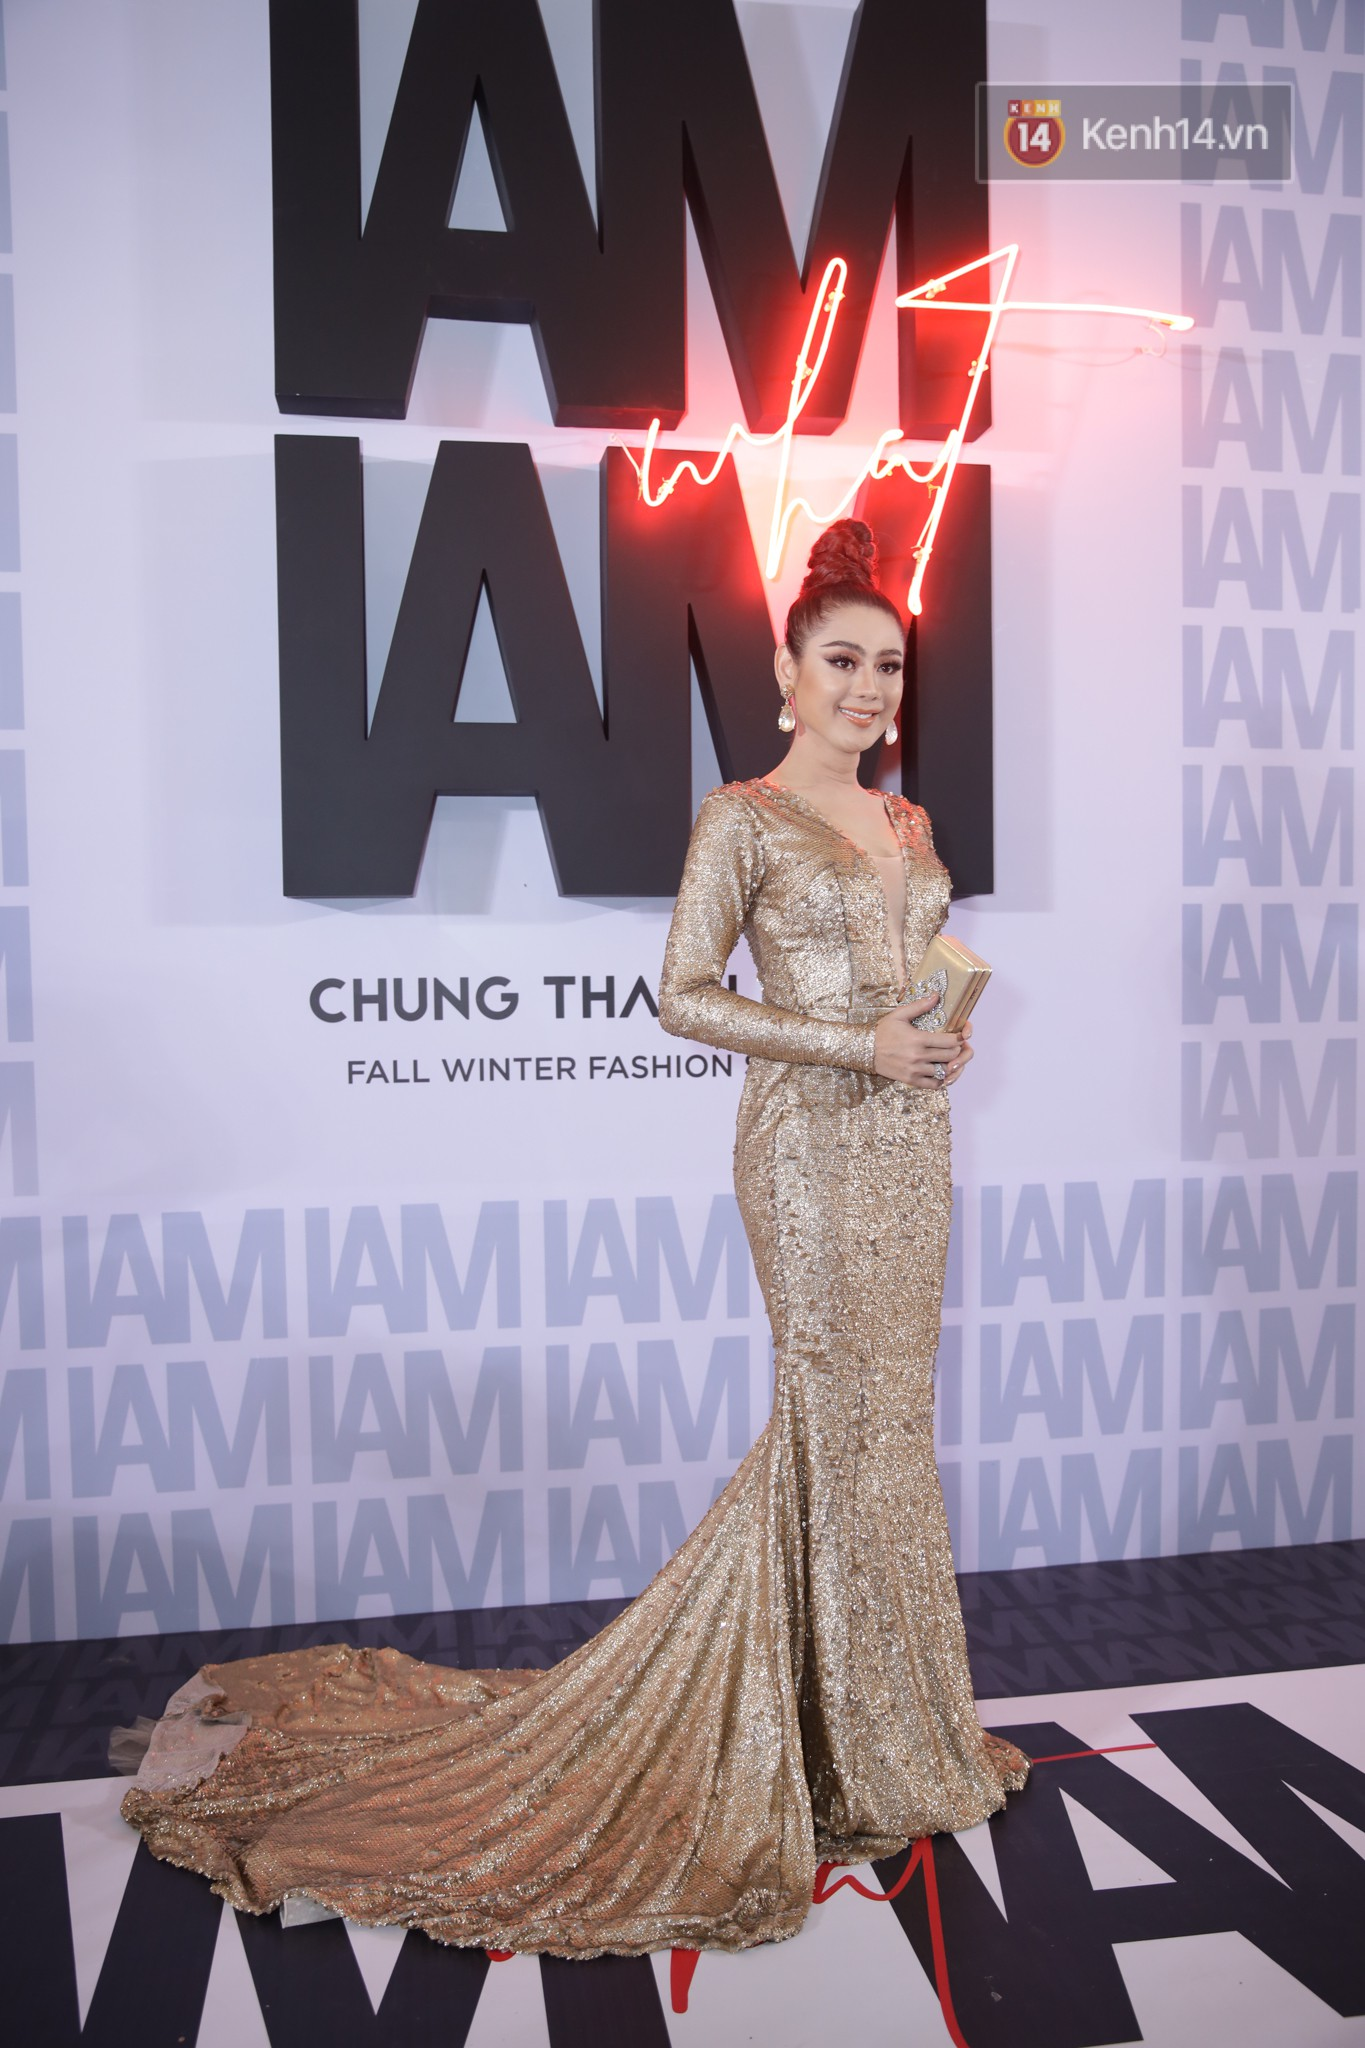 The red carpet Chung Thanh Phong show: It was able to test strange styles, Quỳnh Anh Shyn caught rain like spiders - Photo 11.